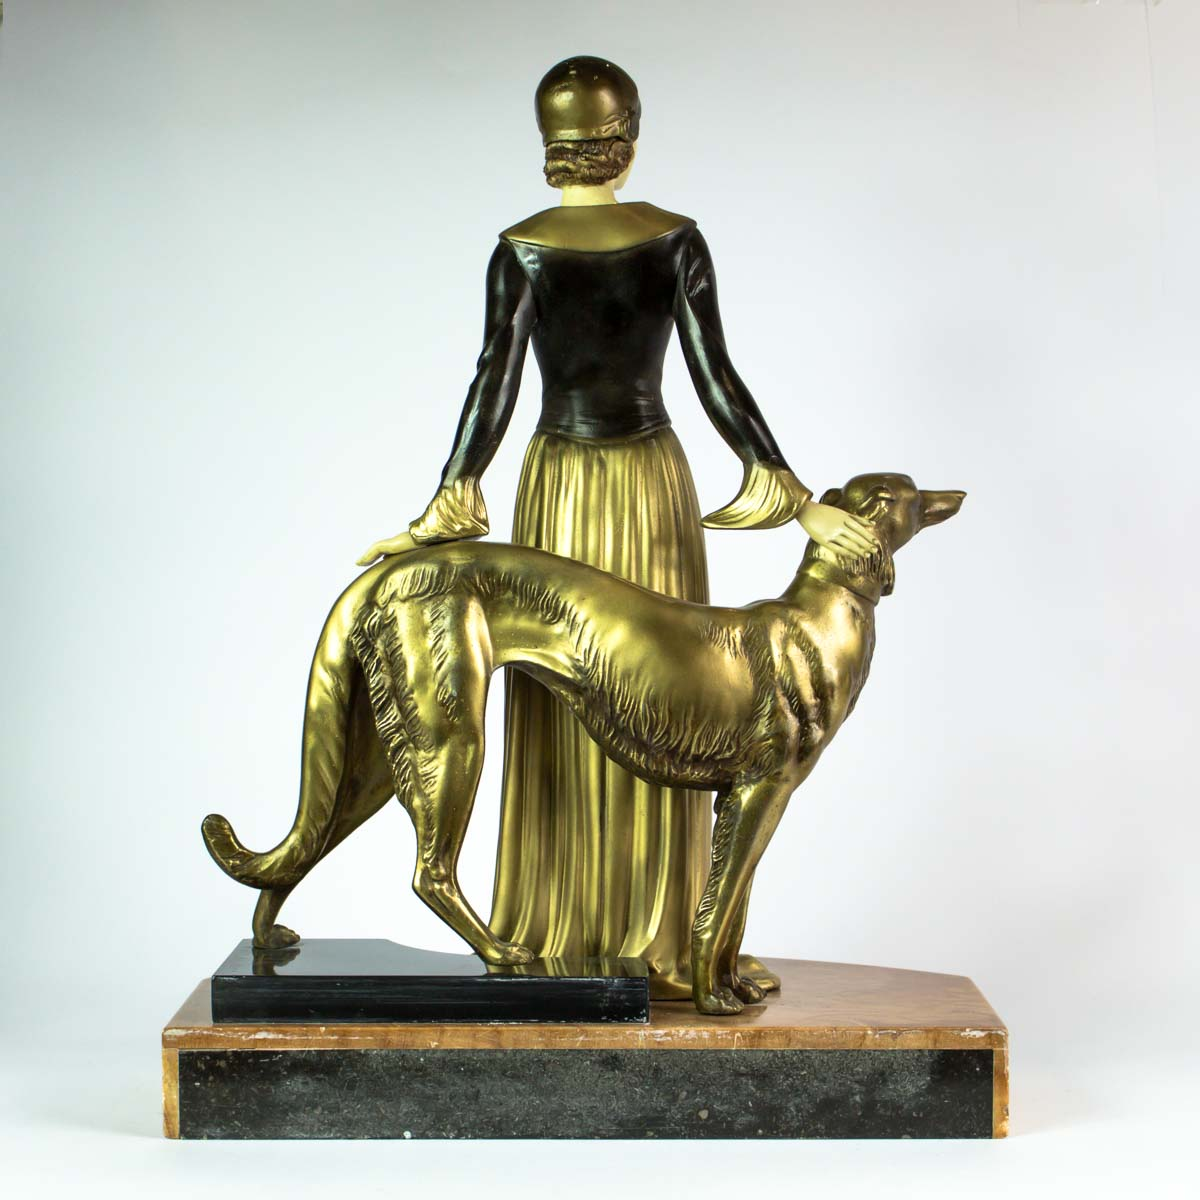 menneville and rochard french art deco chryselephantine sculpture statue for sale antiques. Black Bedroom Furniture Sets. Home Design Ideas